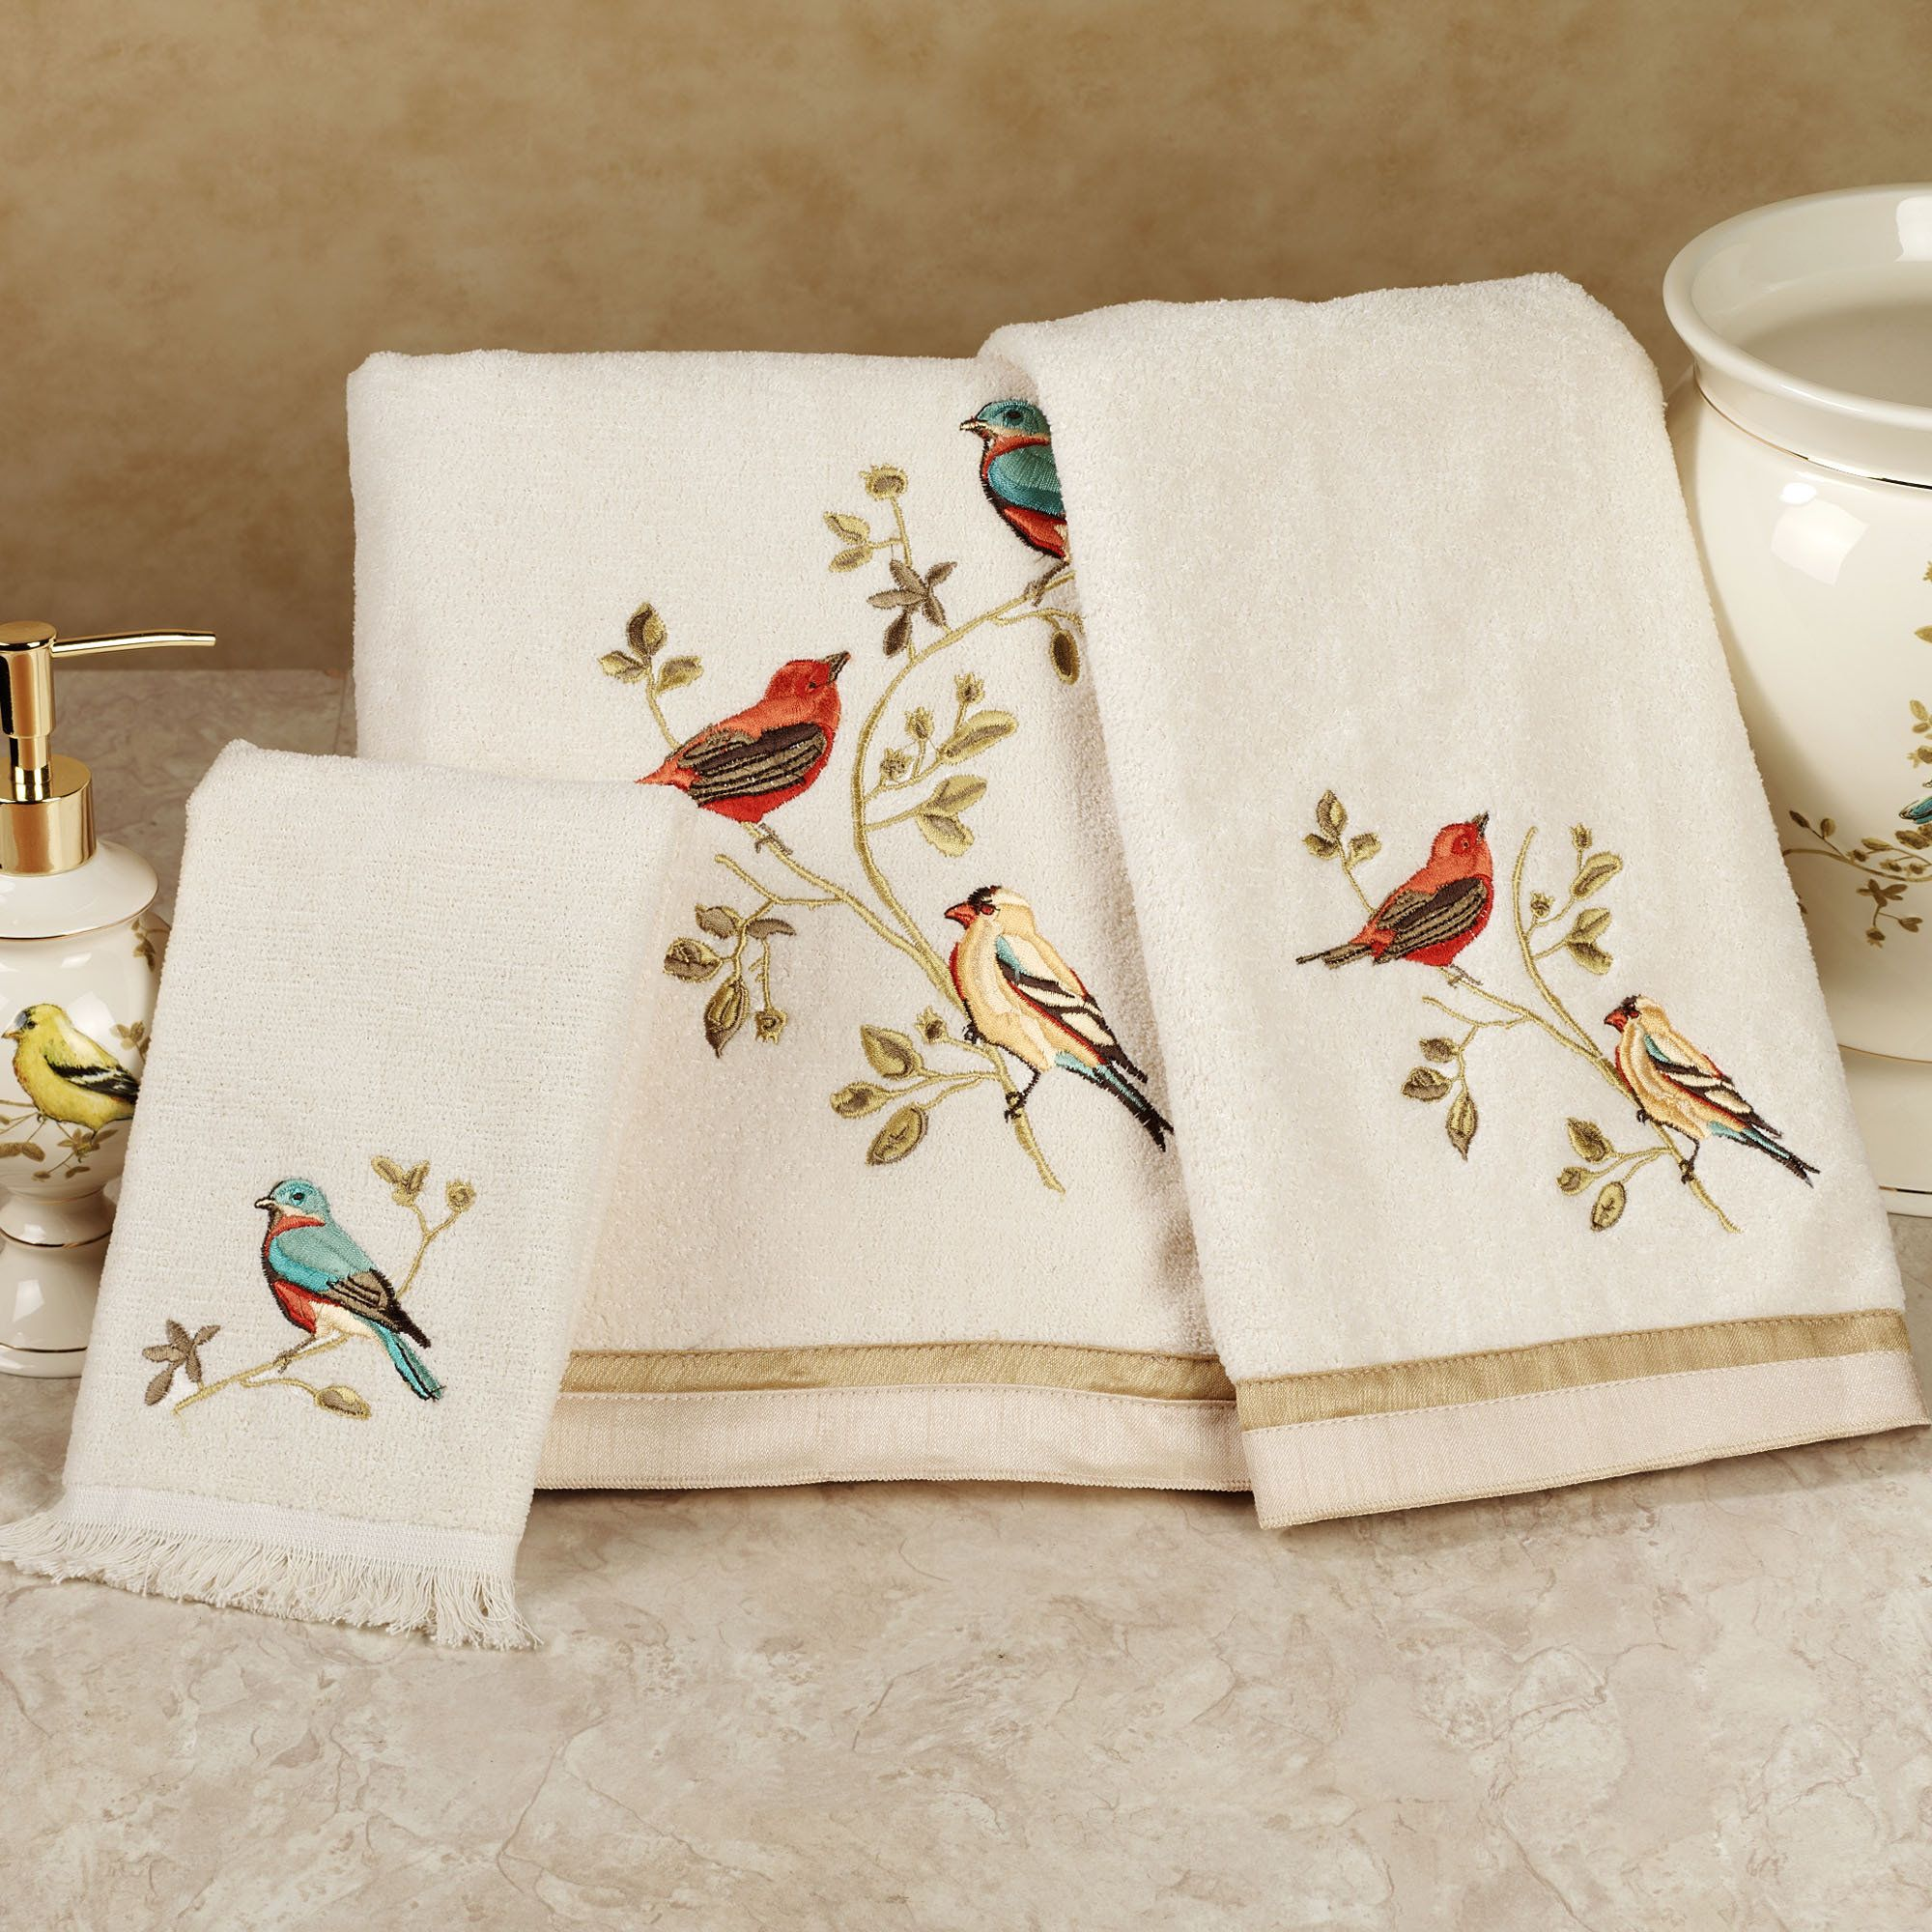 Hand towel embroidery designs for Bathroom embroidery designs